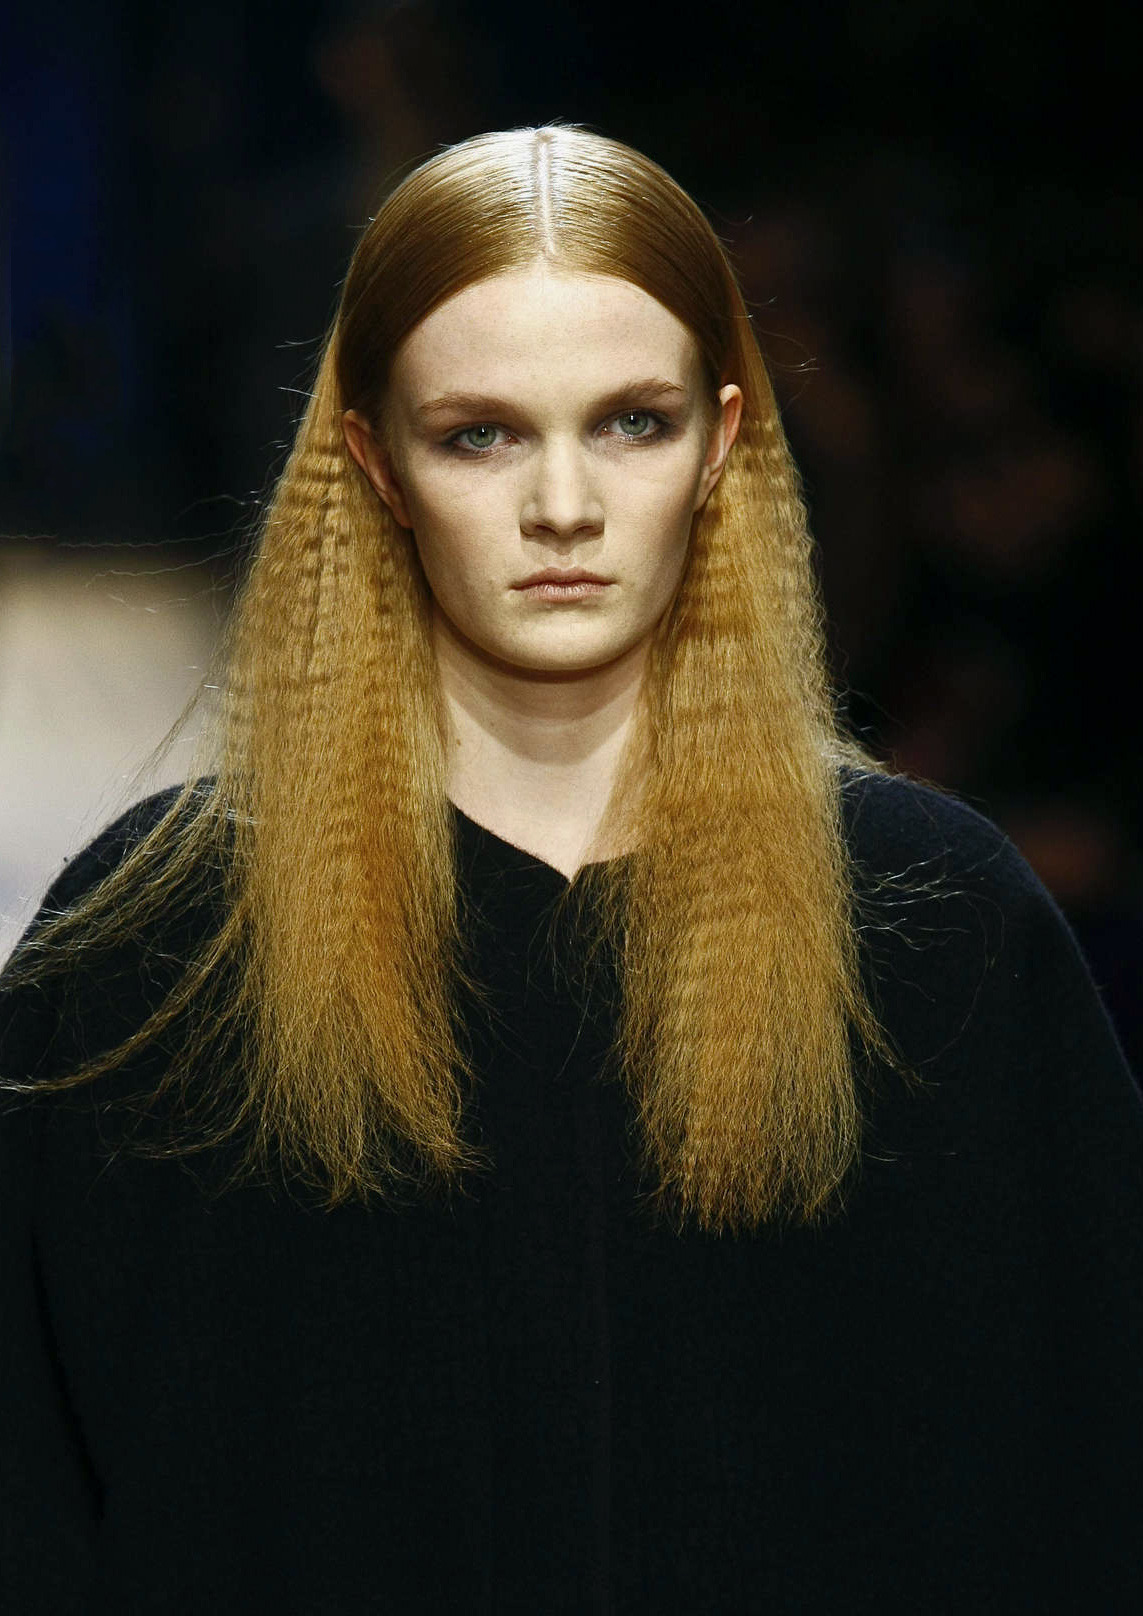 via pellucidus:Julia Shvets at Damir Doma F/W 2010